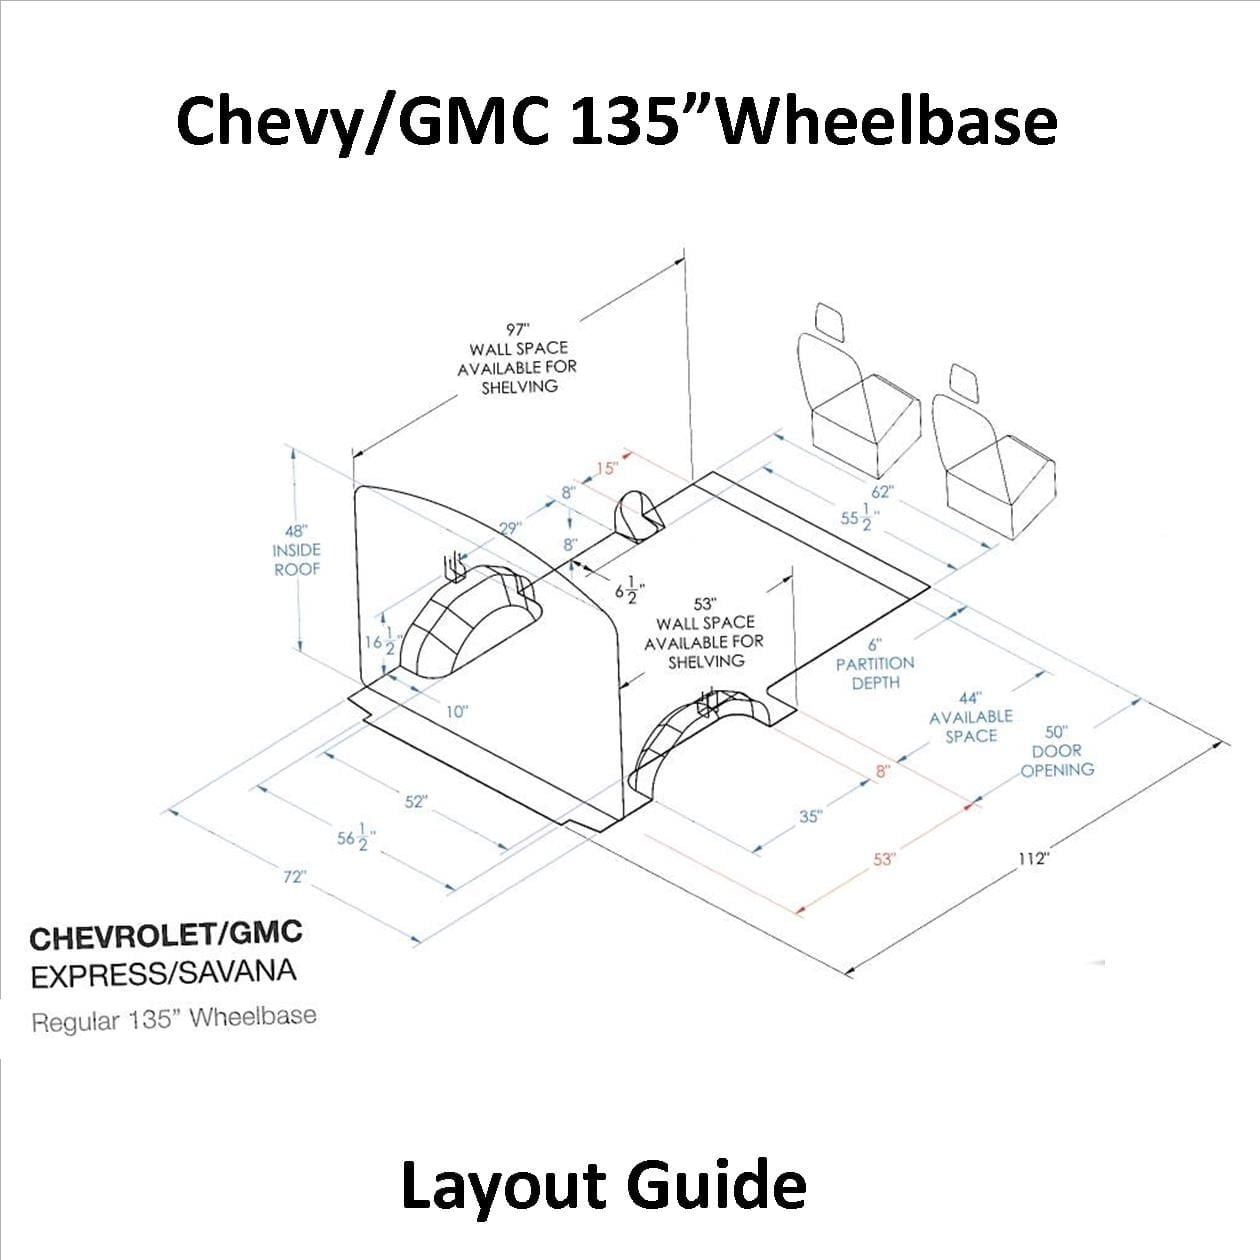 Gm Express Layout Guide 135 Wb